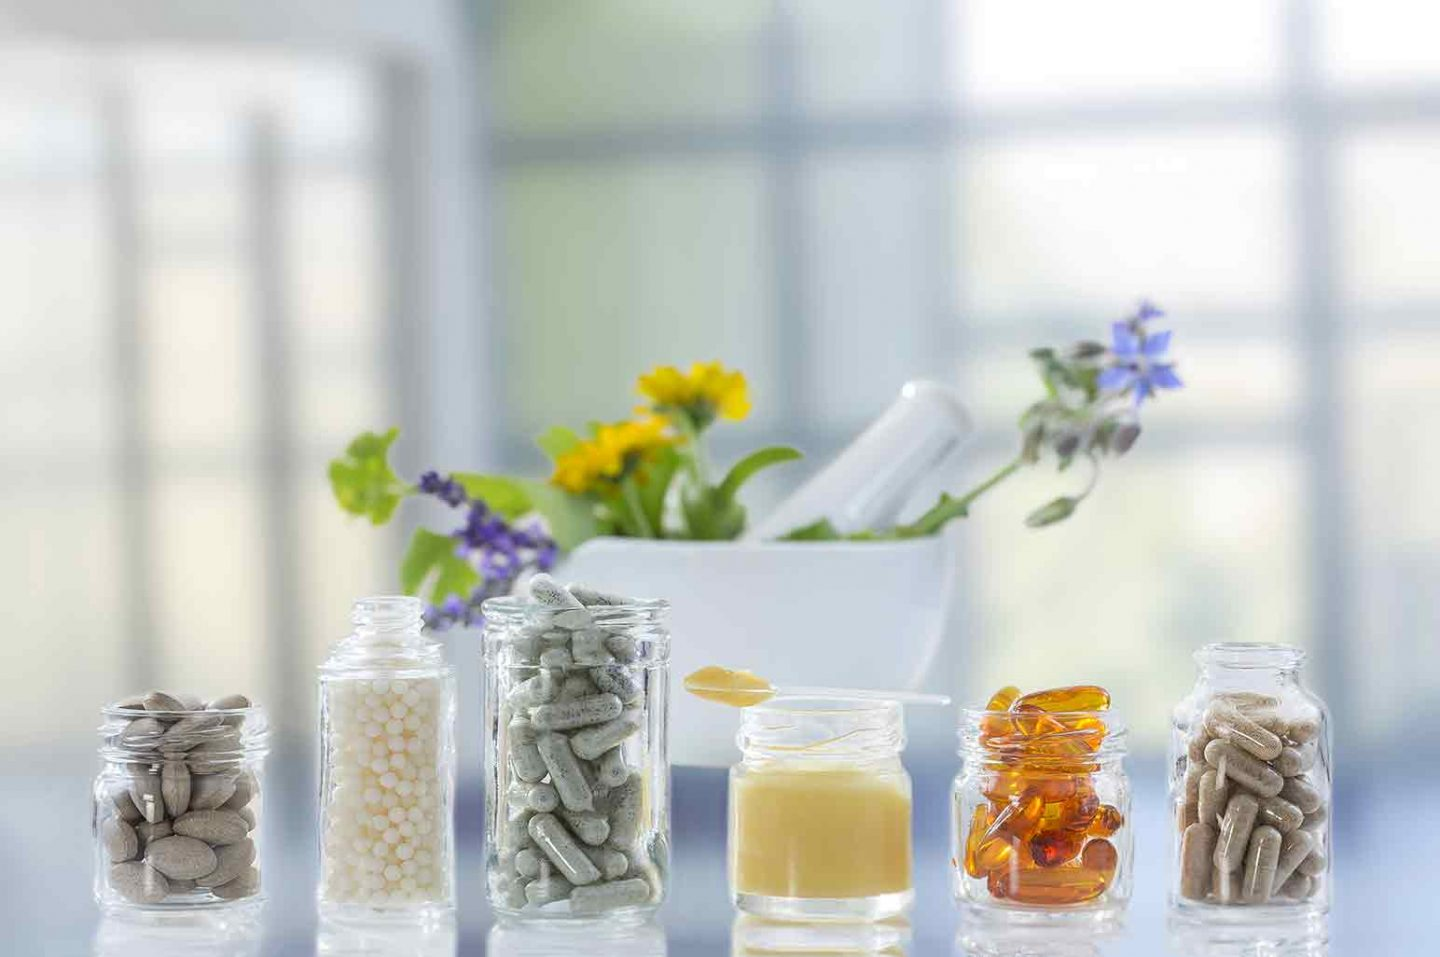 Finding Supplements That Are Healthy And Eco-Friendly